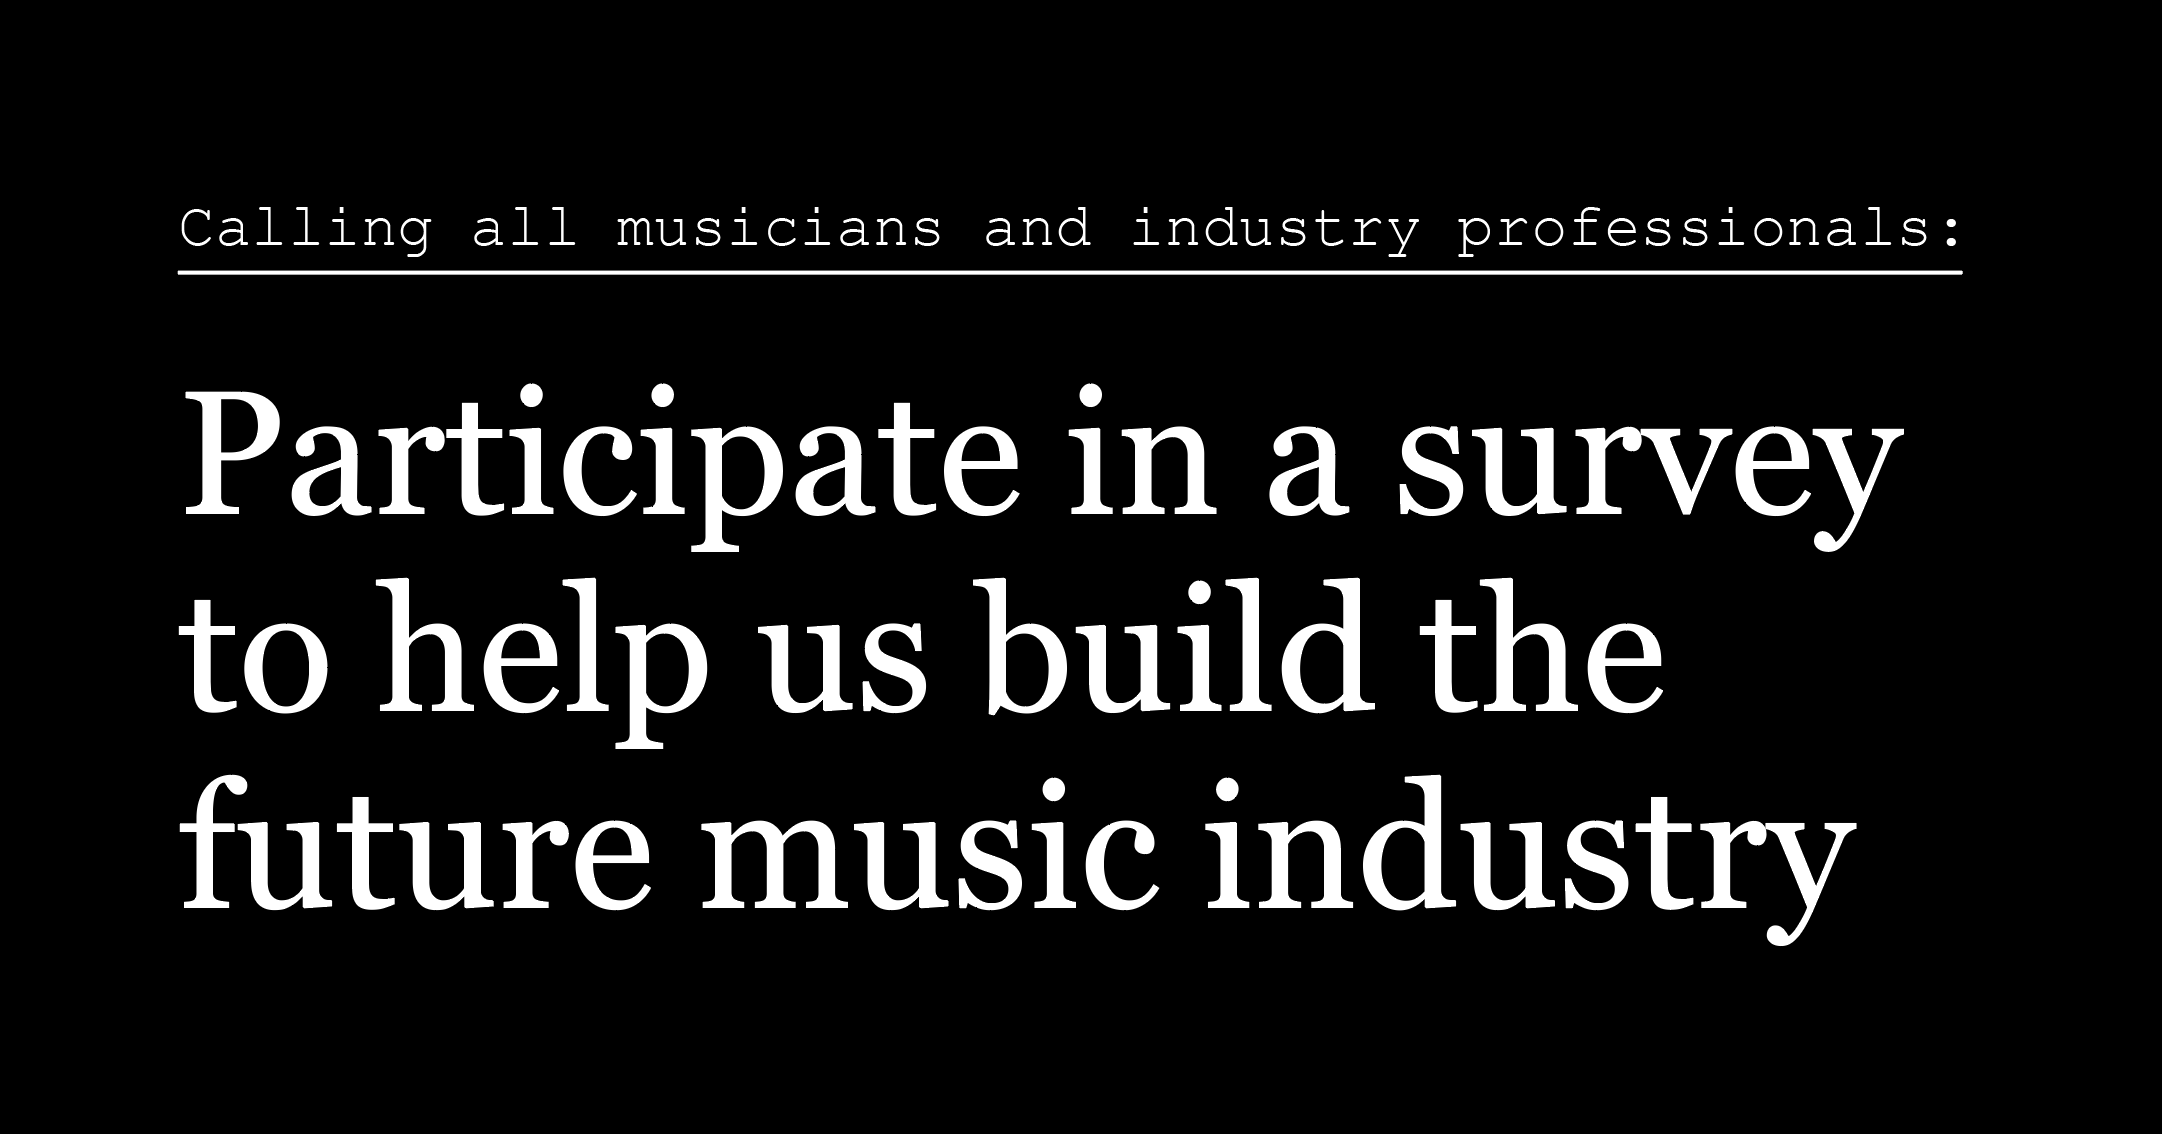 [SURVEY] Help us build the future music industry we want and need